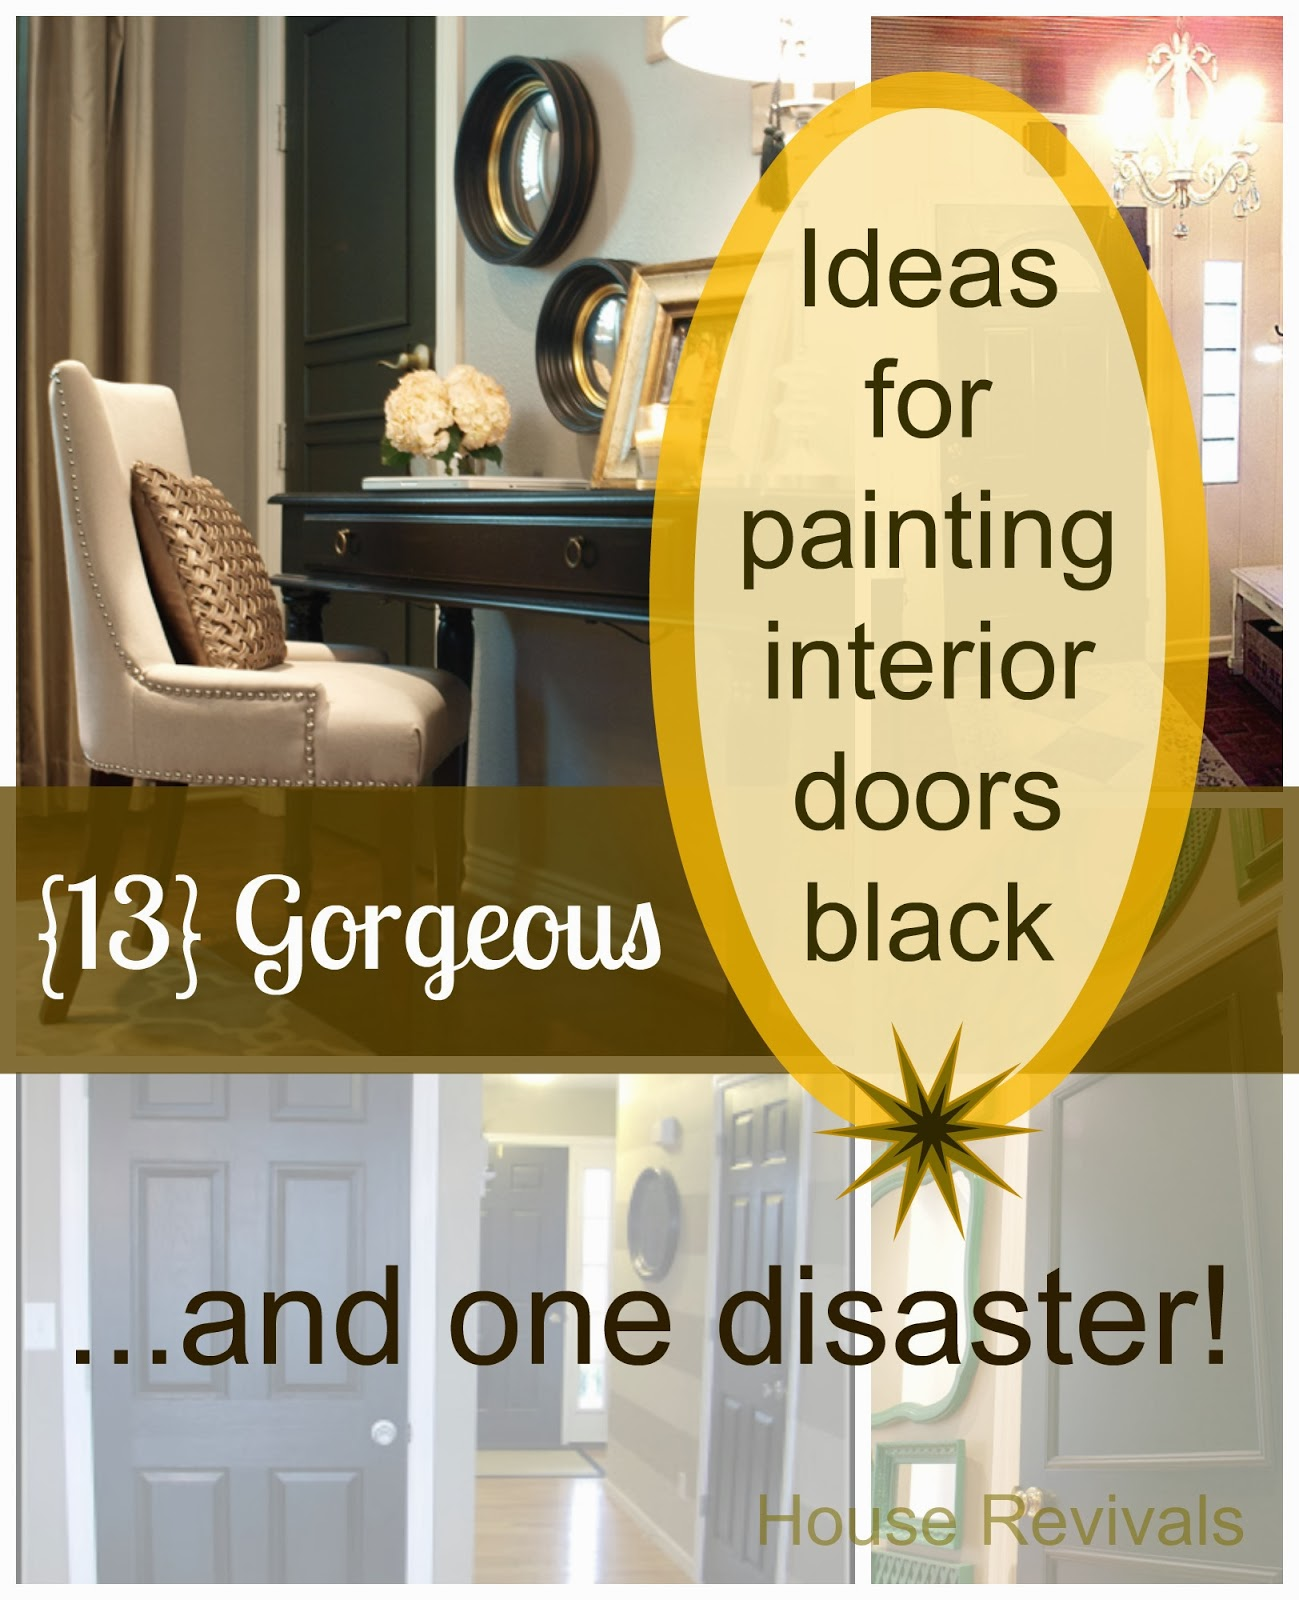 Painting Interior Tips: Painting Doors Black Can Be Just The Right Thing To Add A